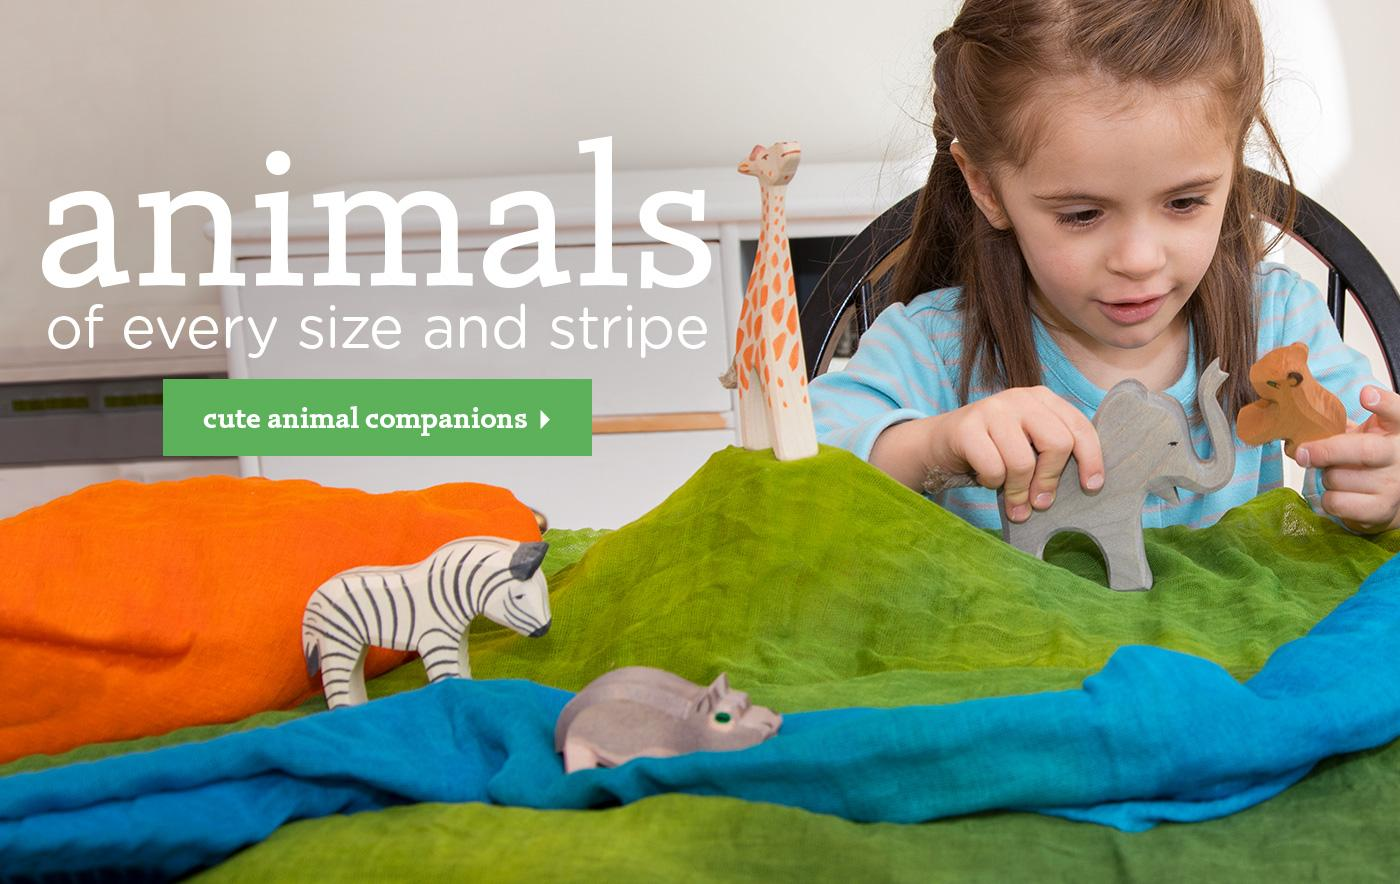 animals of every stripe and size